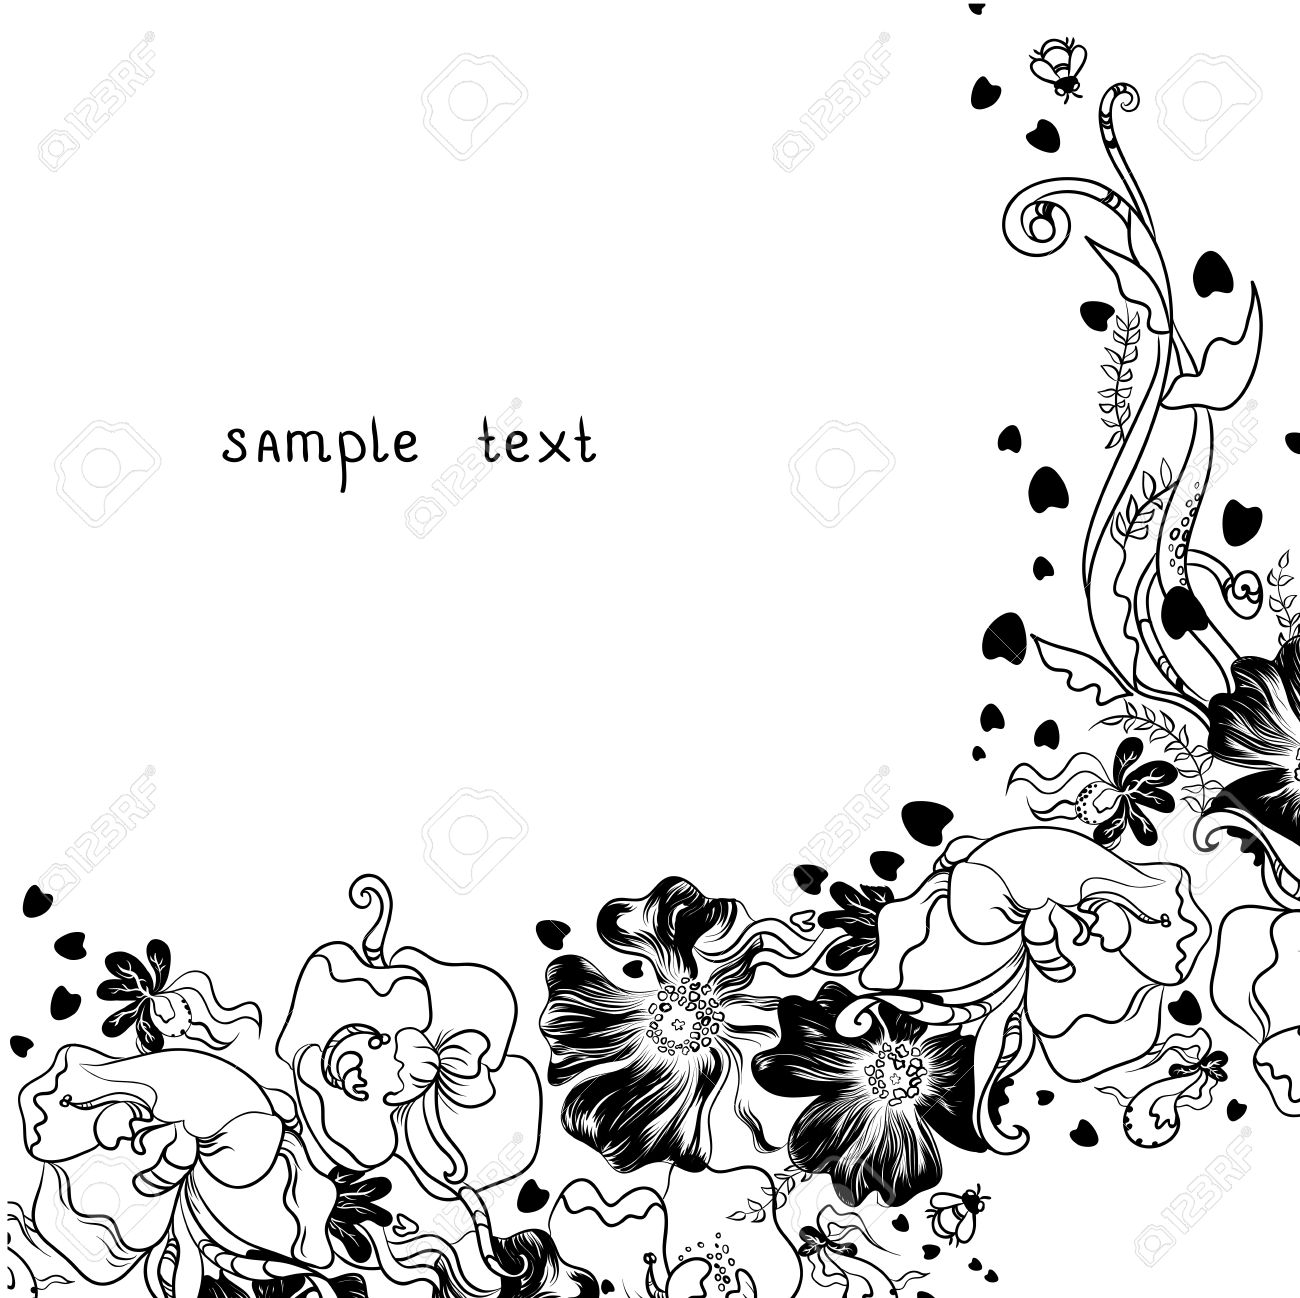 1300x1298 Flowers Decoration Image Drawings Flowers Silhouette Royalty Free